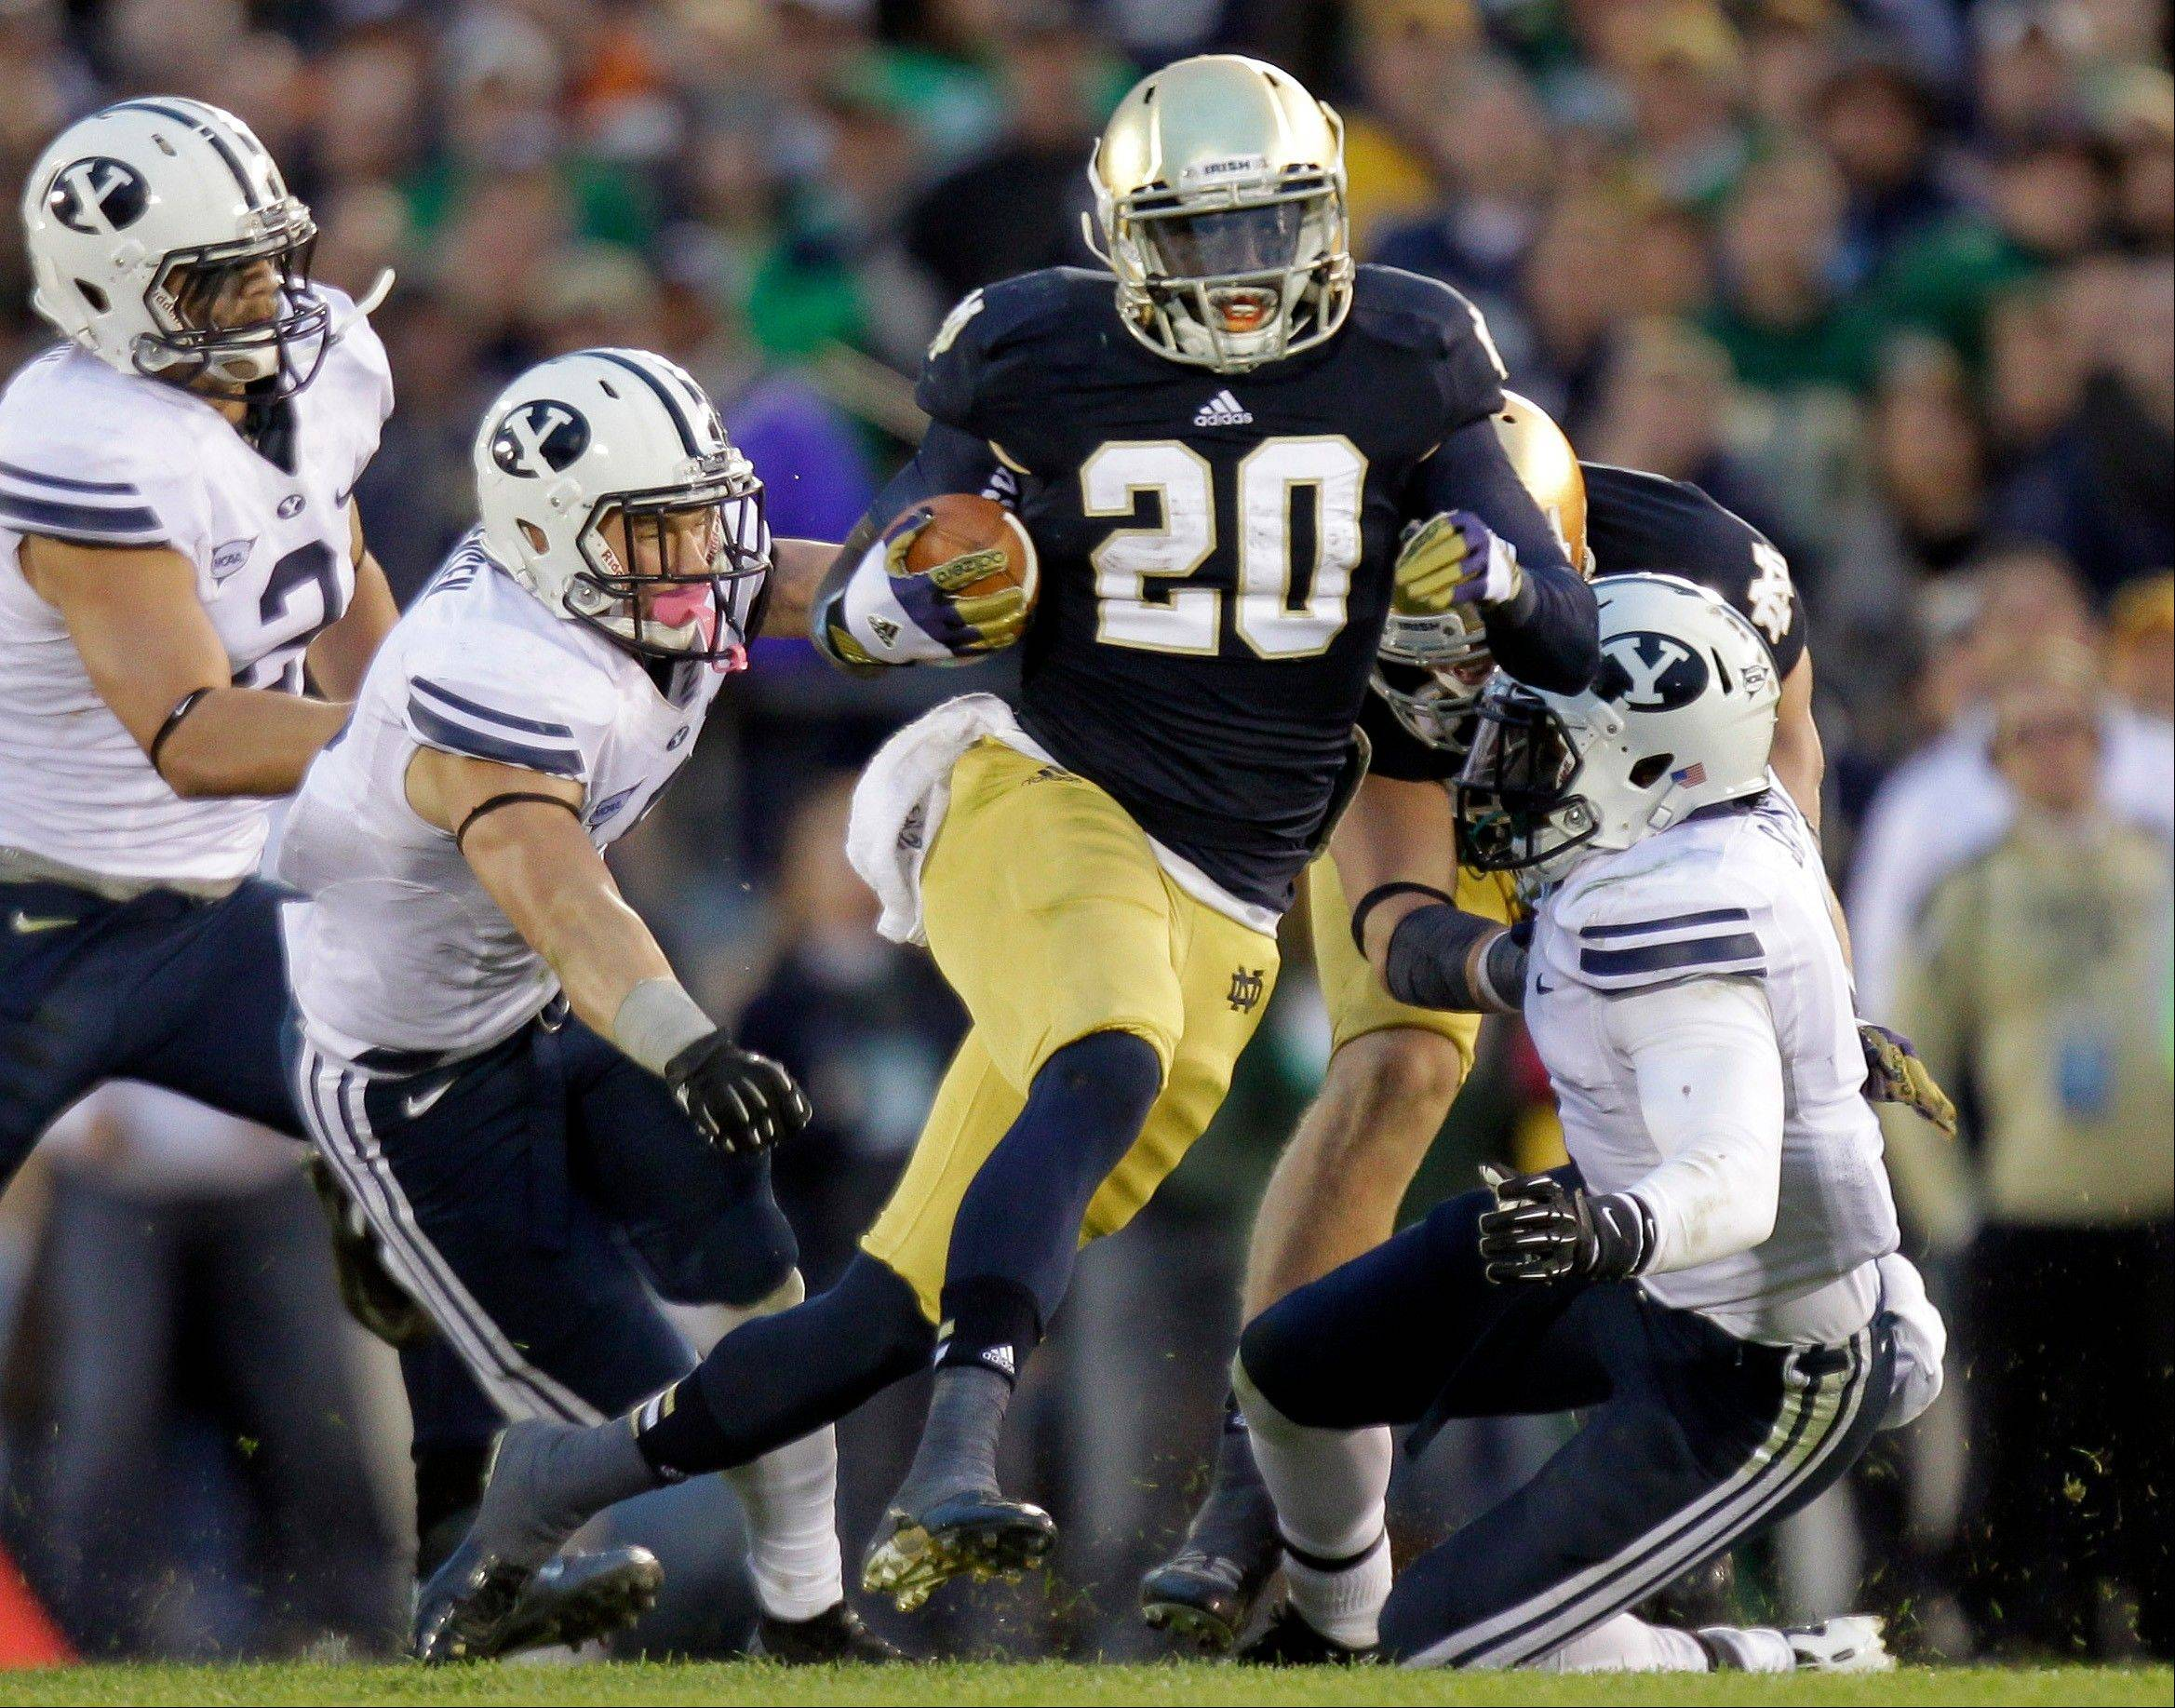 Notre Dame running back Cierre Wood, center, cuts between Brigham Young defenders Spencer Hadley, left, Daniel Sorensen, left center, and Joe Sampson. With the national championship on the line, two throwback offenses will slug it out. No. 1 Notre Dame and No. 2 Alabama rely heavily on the run, and that doesn't figure to change in the biggest game of the year.